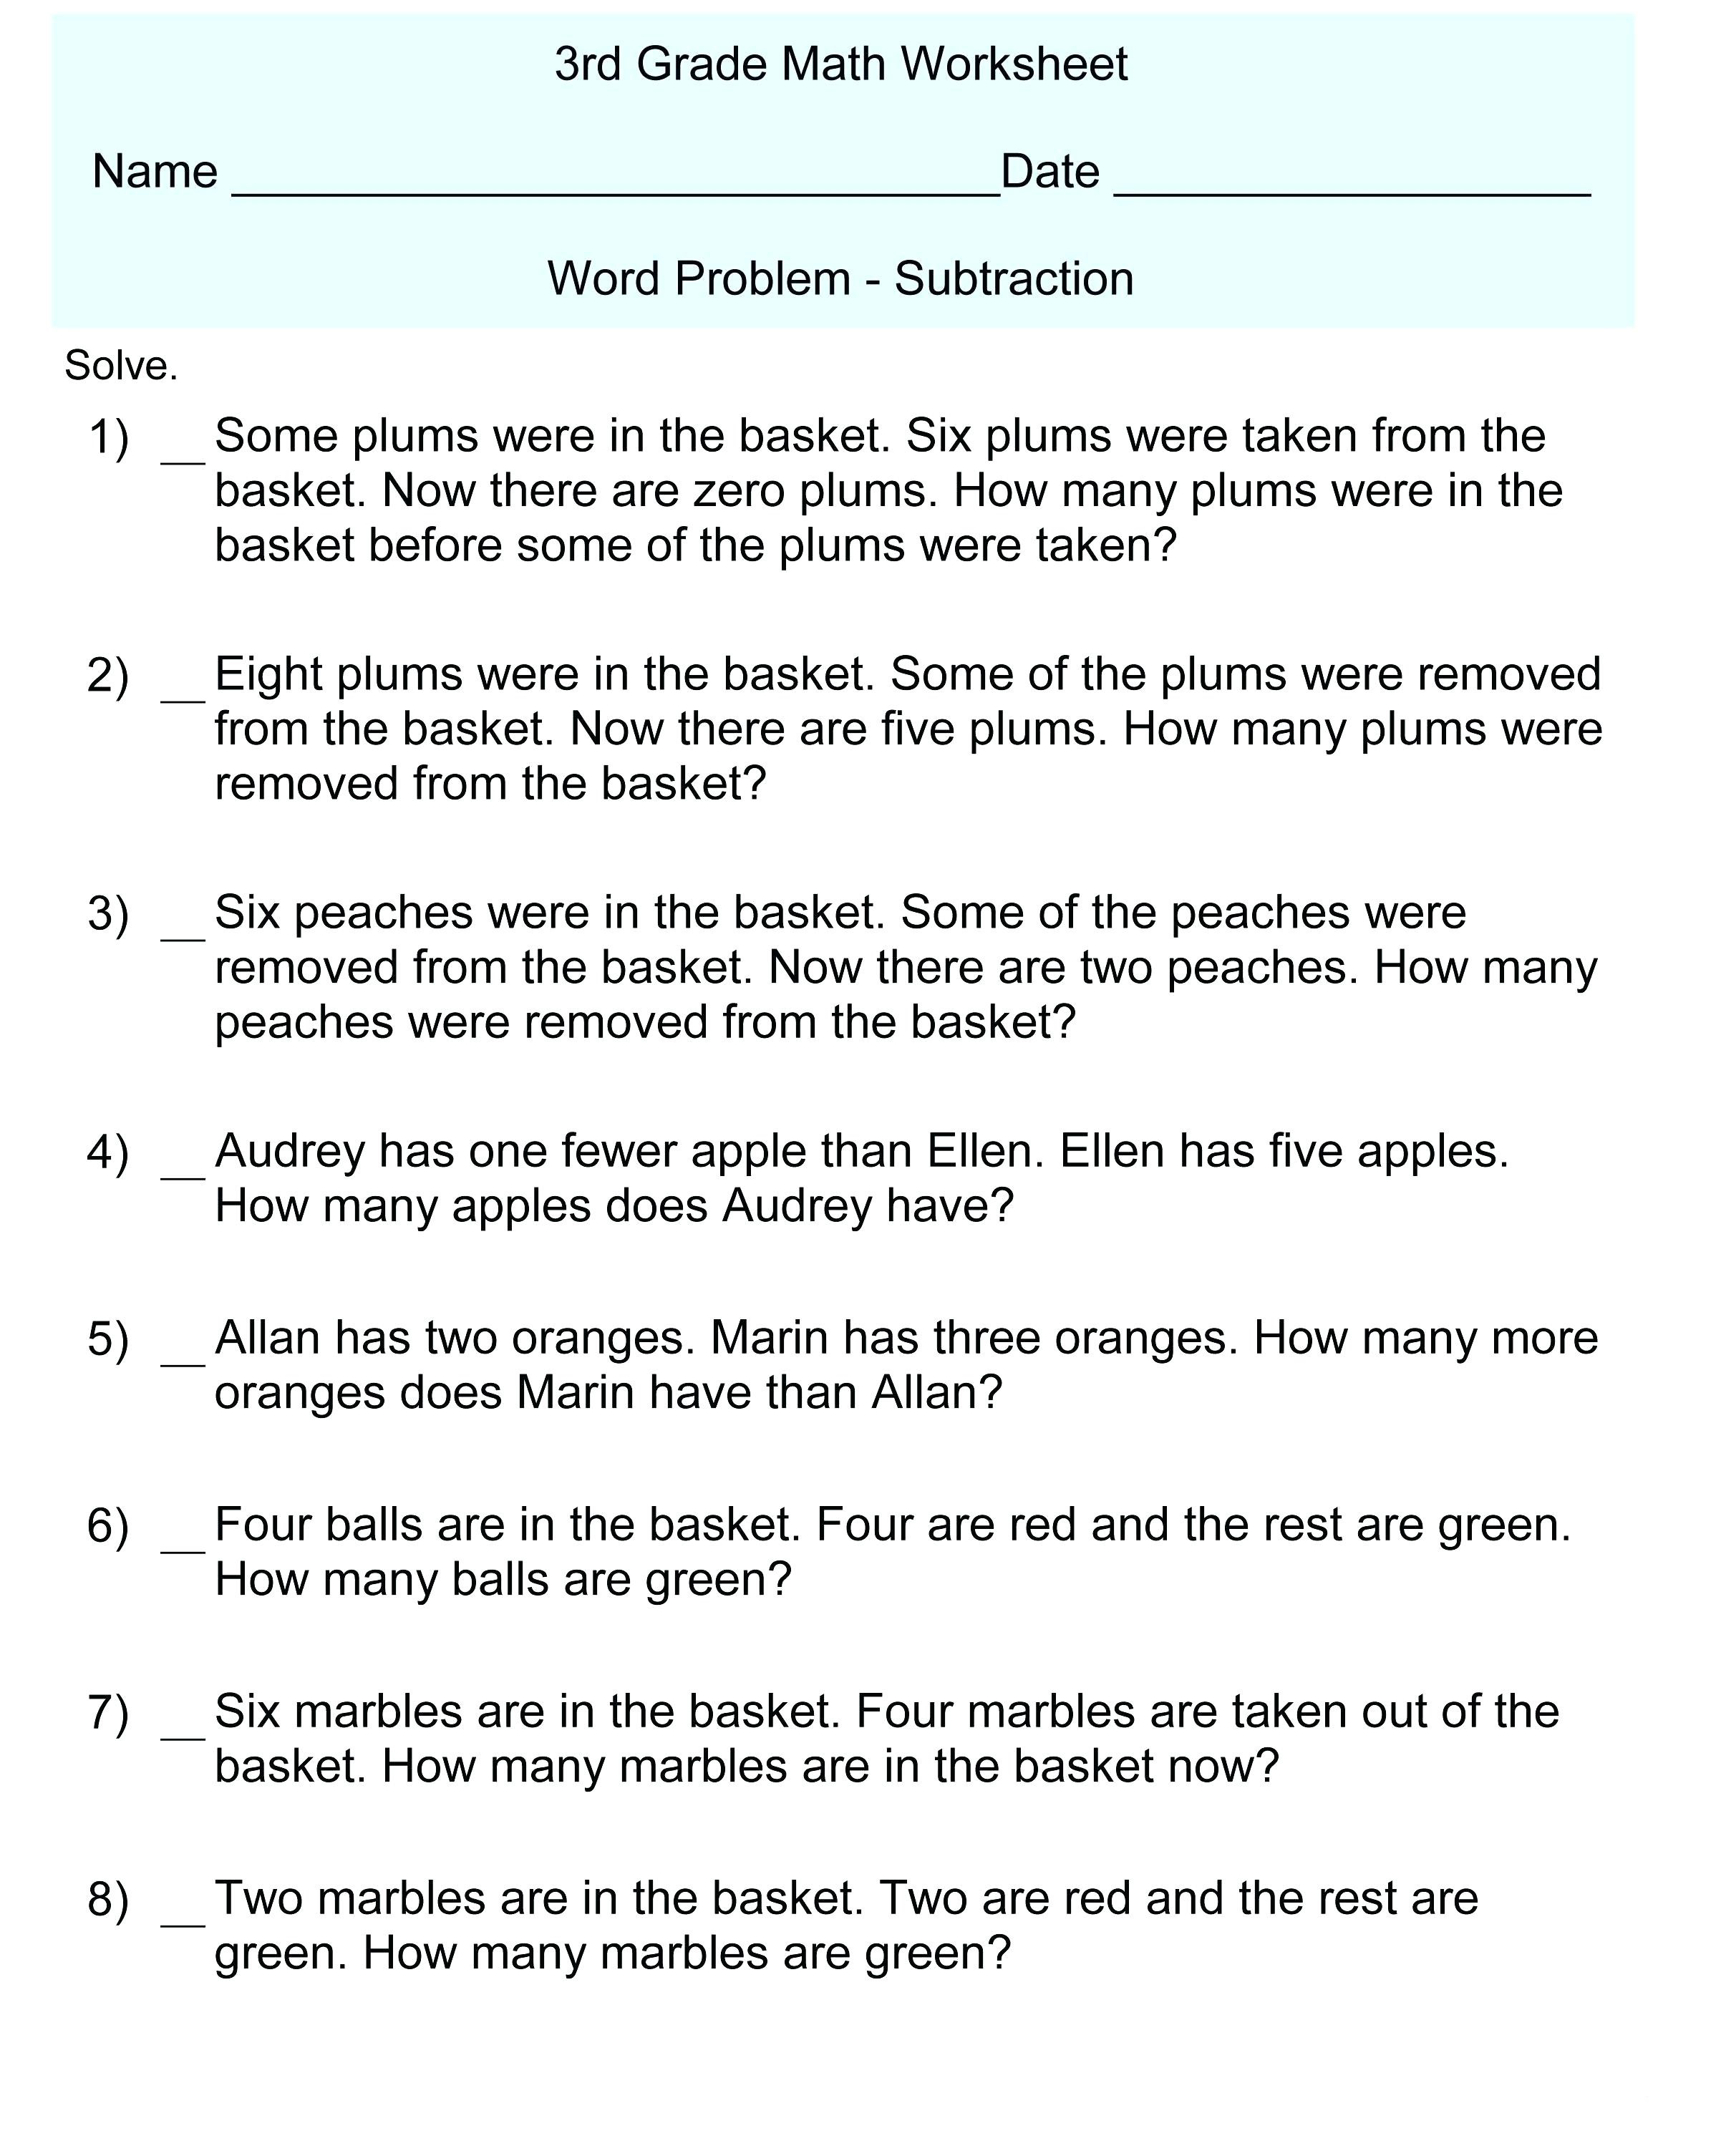 Math Worksheet 3rd Grade Printable